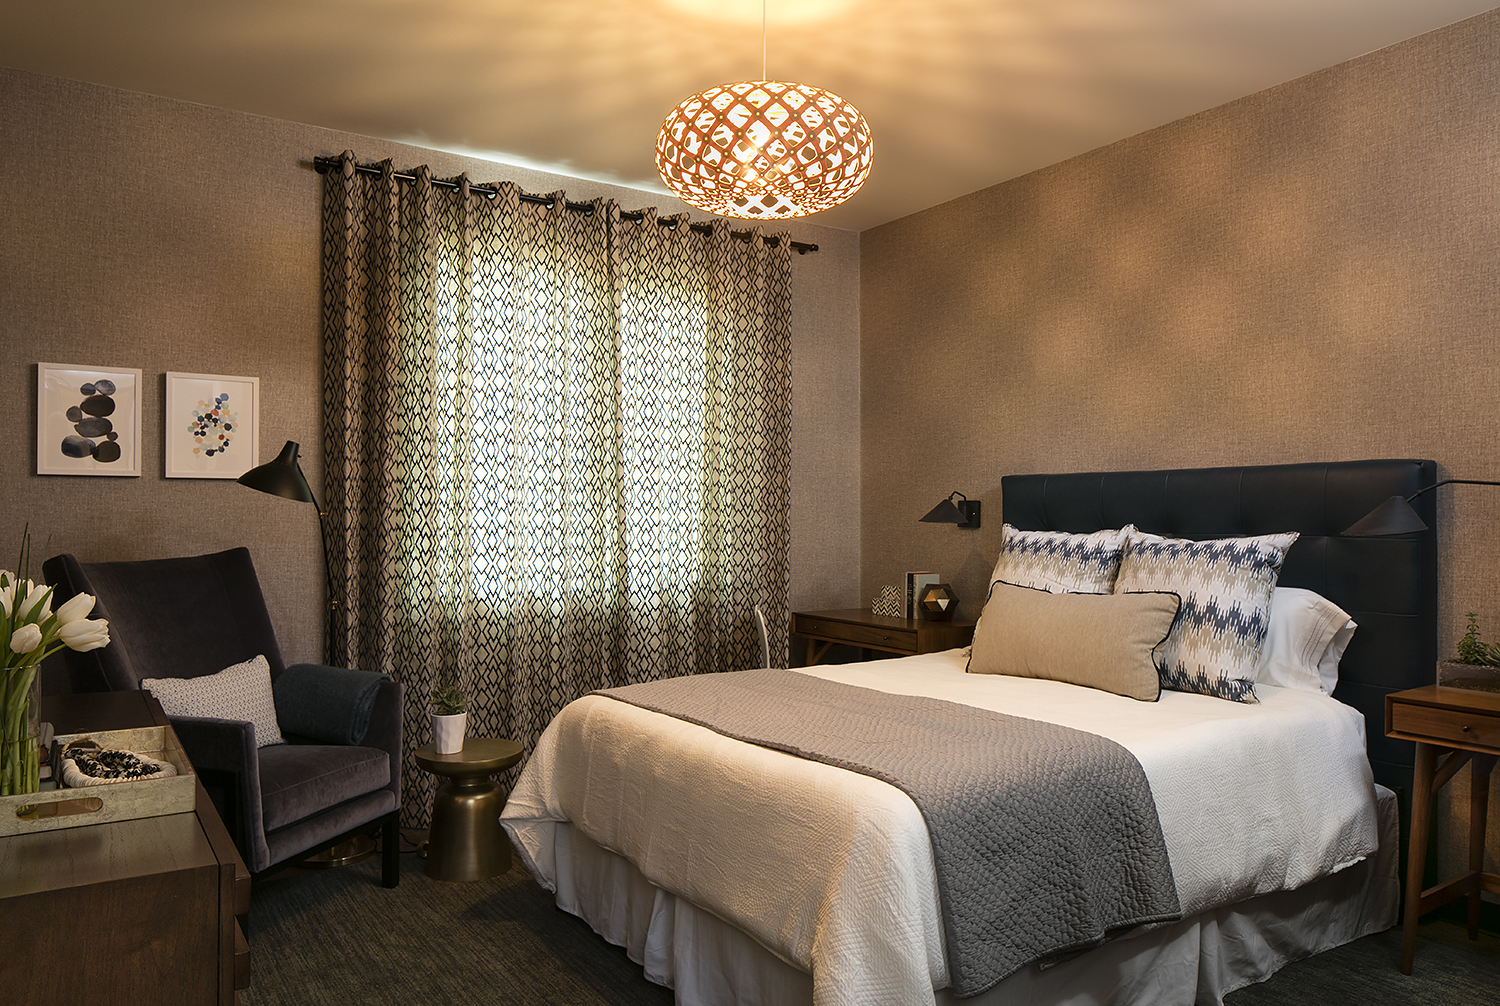 One of the bedrooms in a 2-bedroom, 2-bathroom family suite, Ronald McDonald House at Stanford; interior design donated by LMB Interiors; fabrics donated by Robert Allen